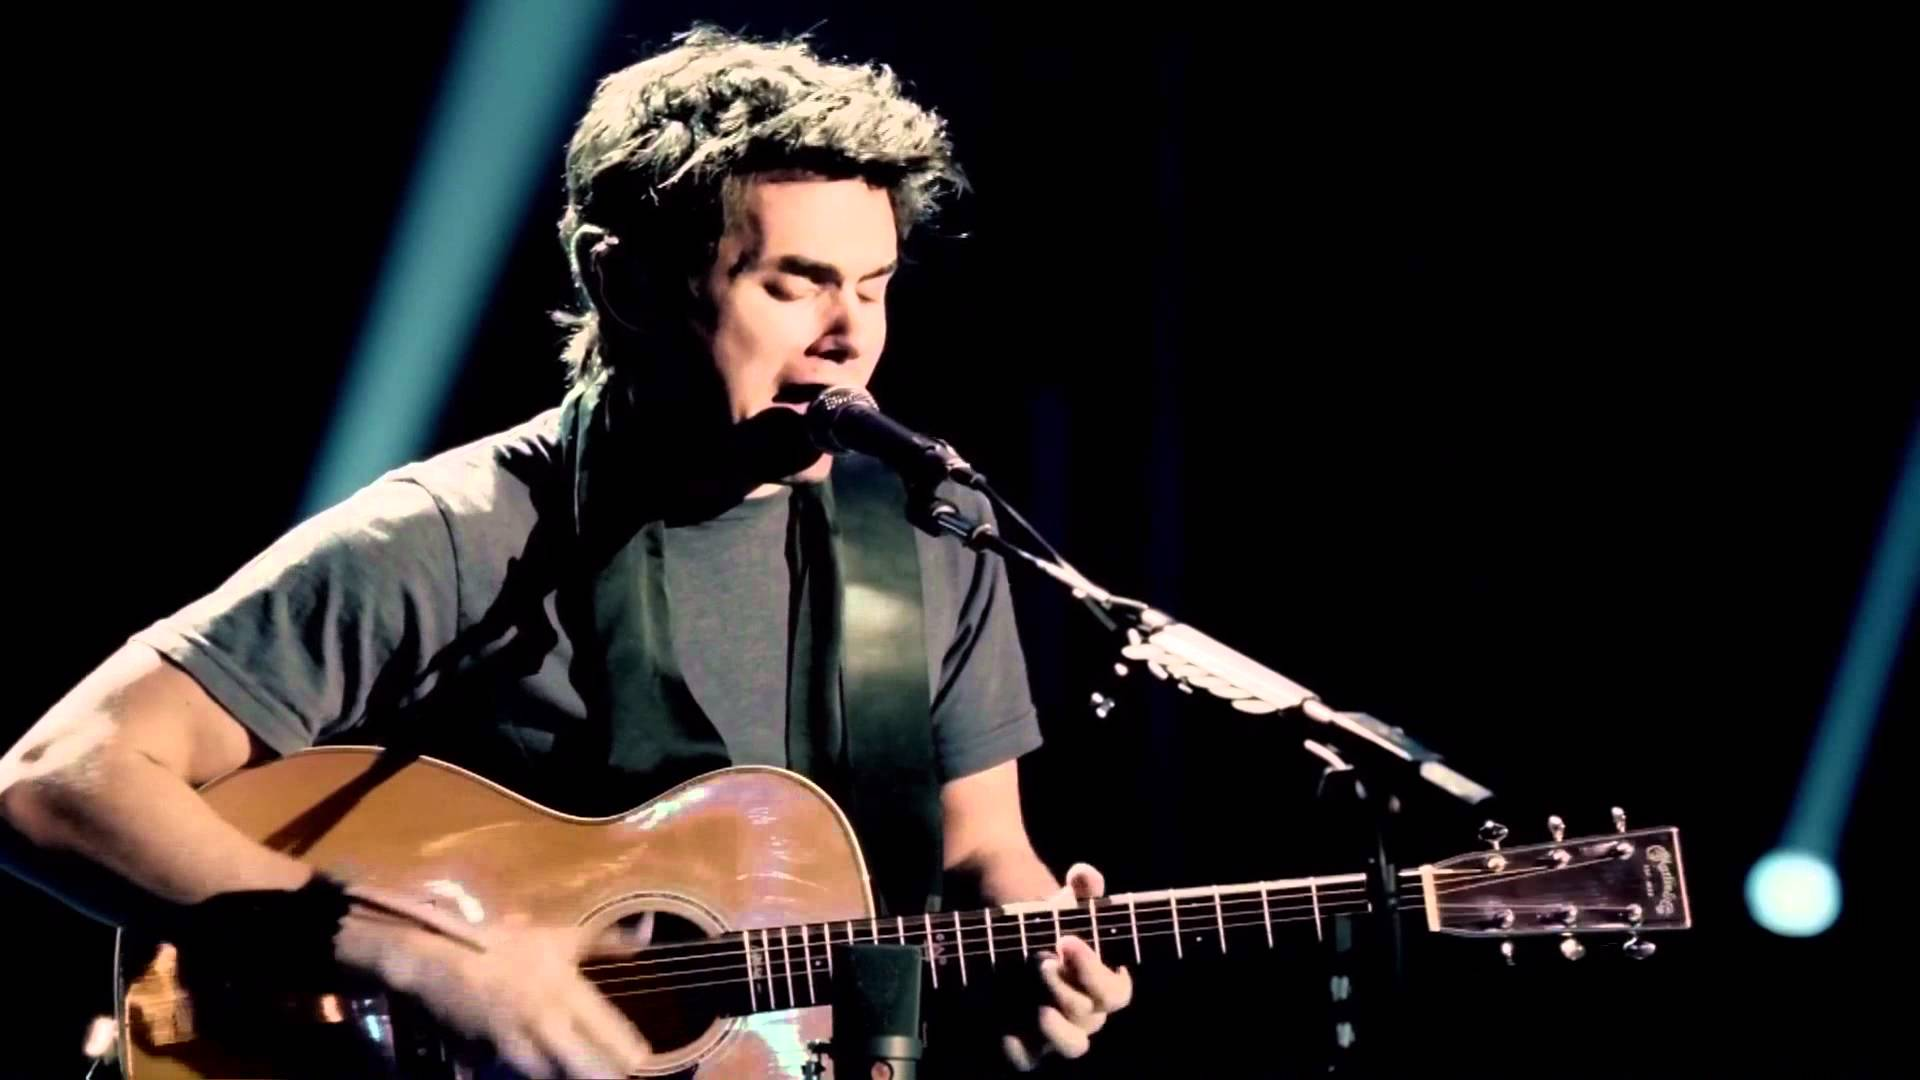 Musician and guitarist John Mayer playing Free Fallin' in Los Angeles.